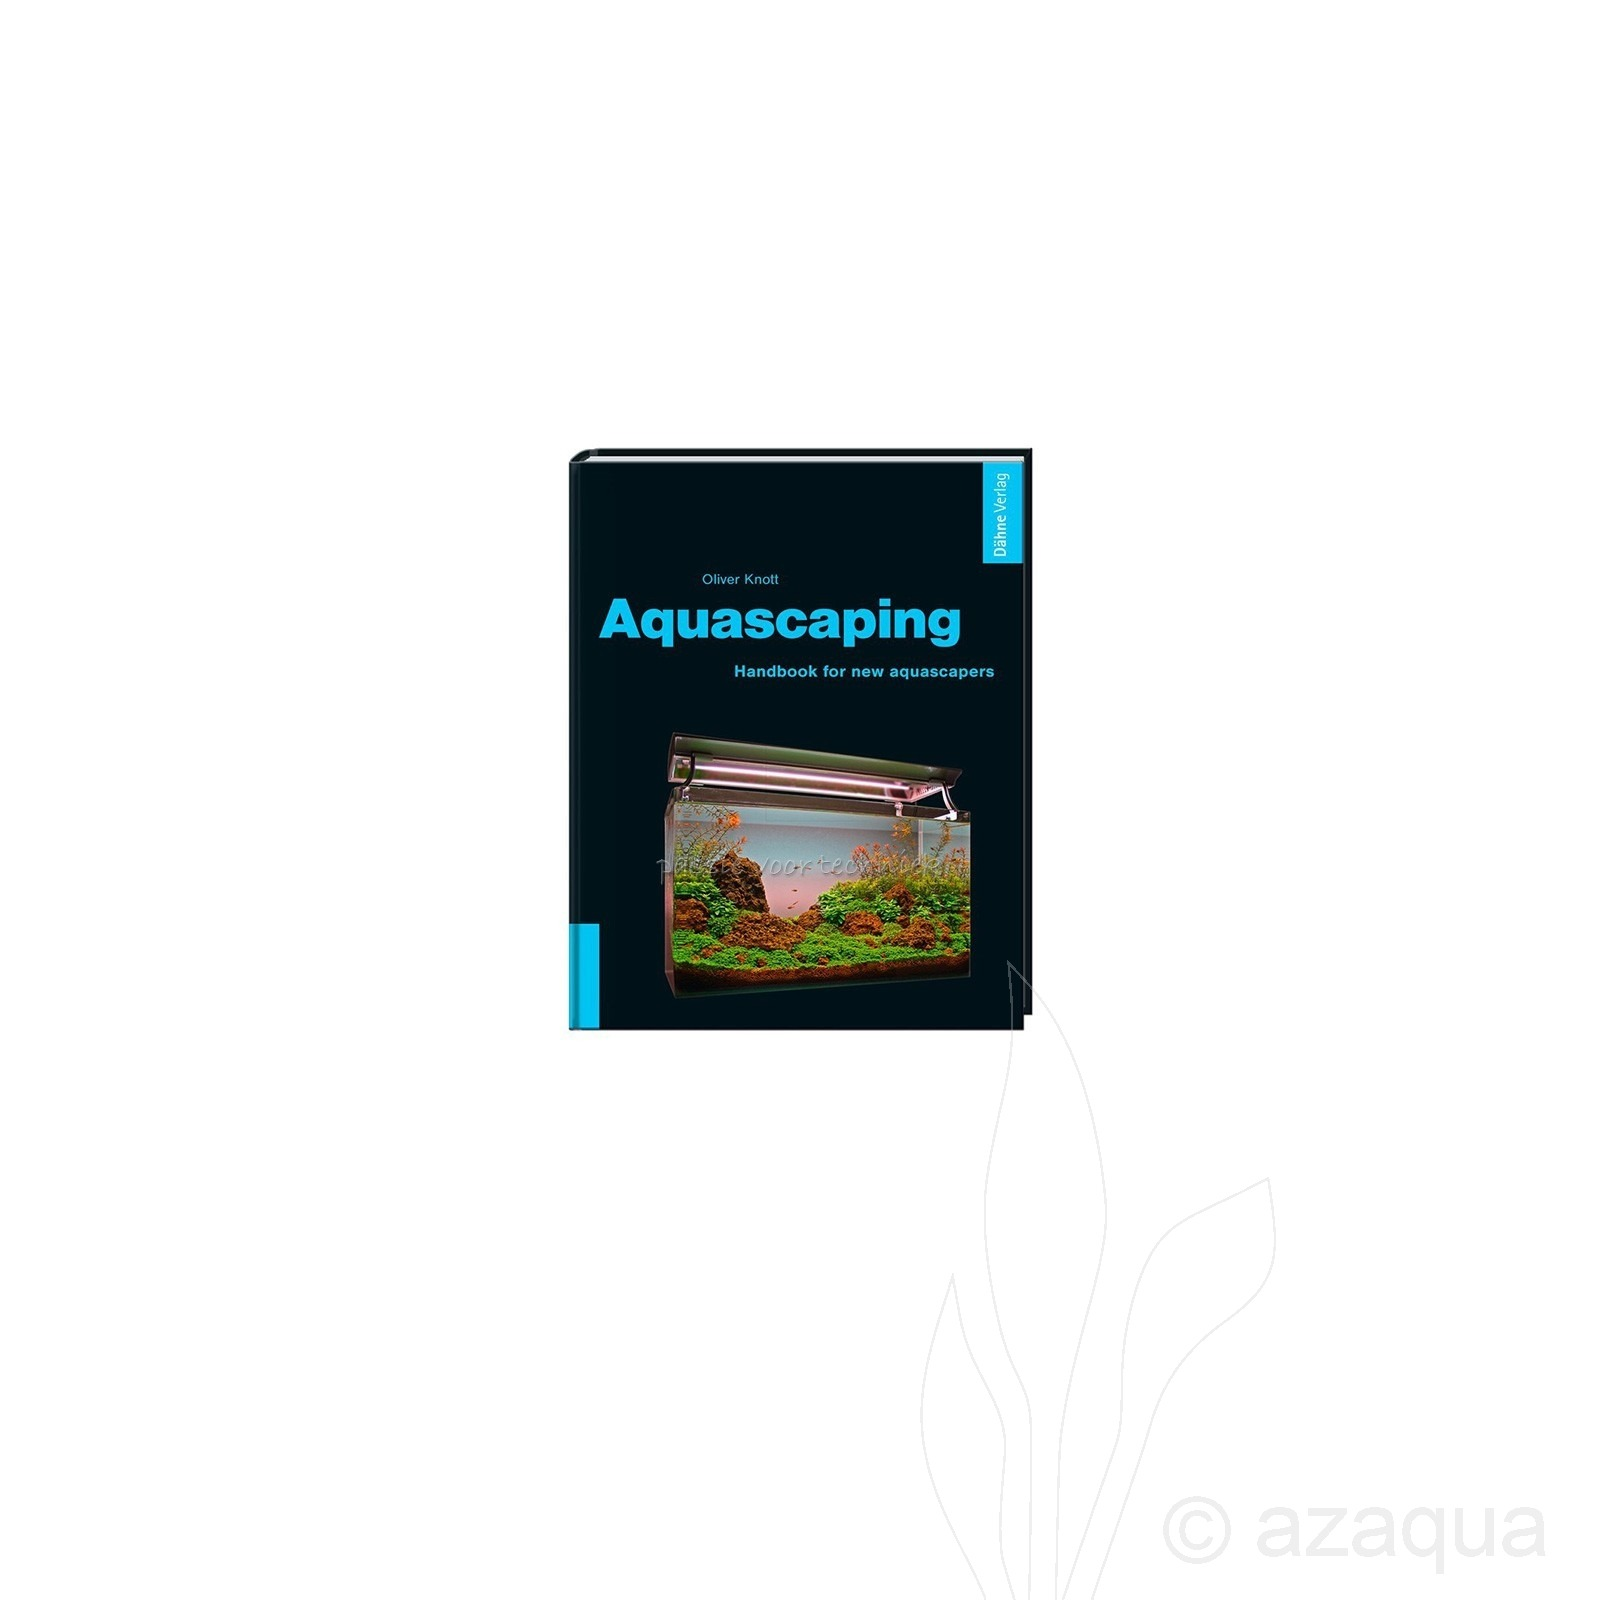 Aquascaping - Handbook for new aquascapers by Oliver Knott